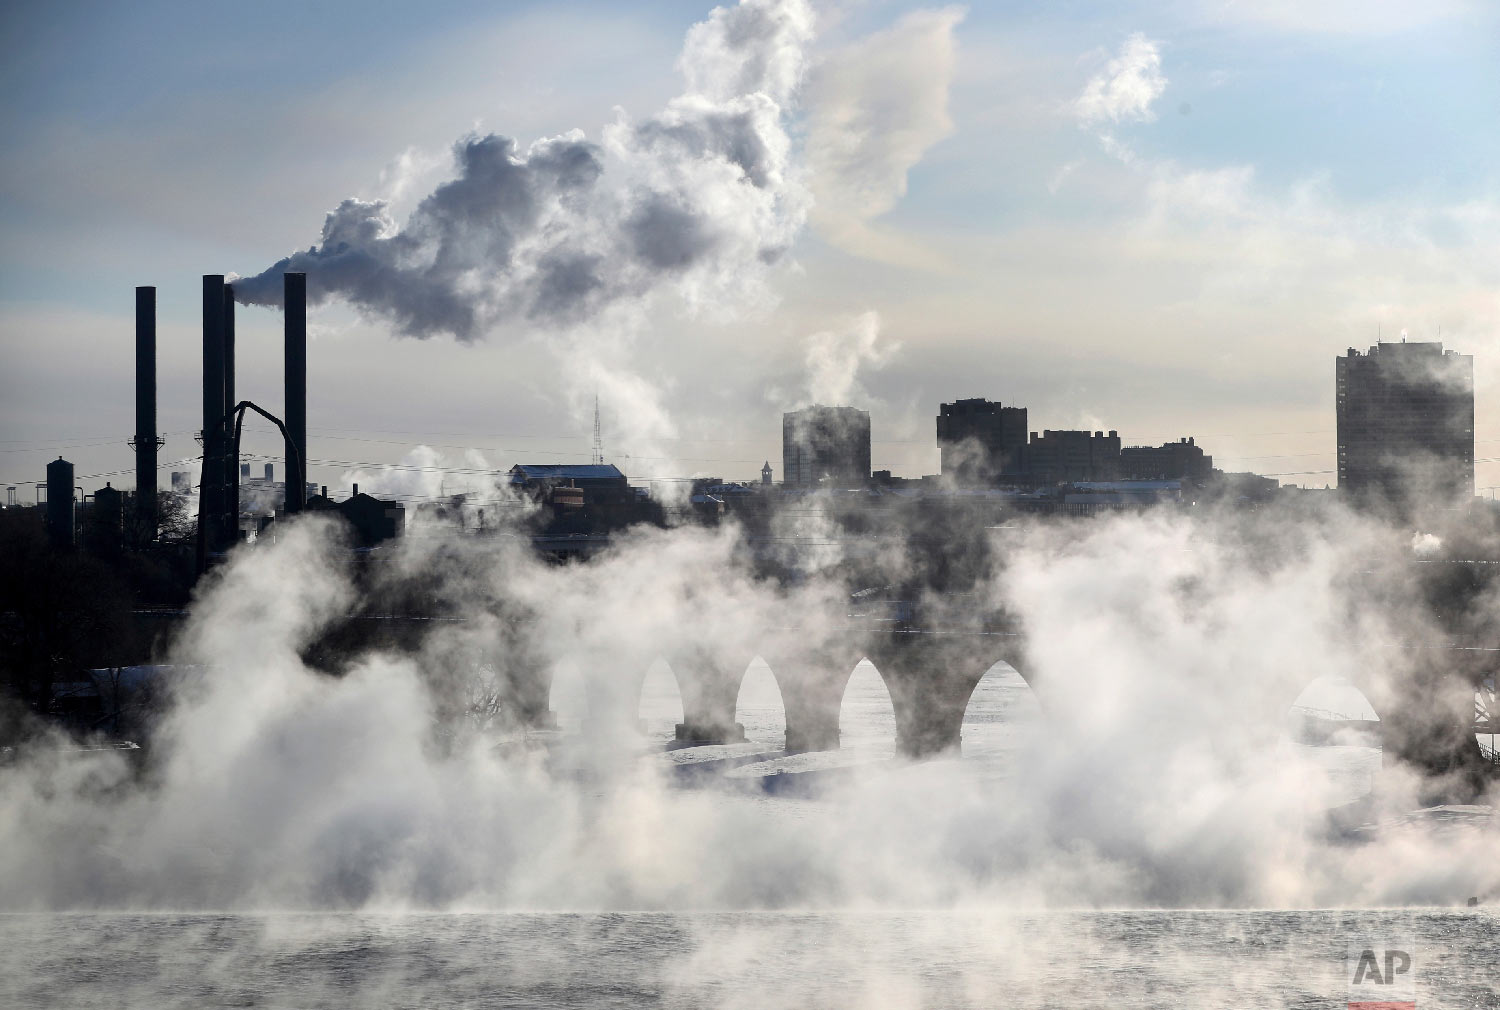 Water vapor rises above St. Anthony Falls on the Mississippi River as the Stone Arch Bridge is obscured, seen from the Third Ave. Bridge Tuesday, Jan. 29, 2019, In Minneapolis. (David Joles/Star Tribune via AP)